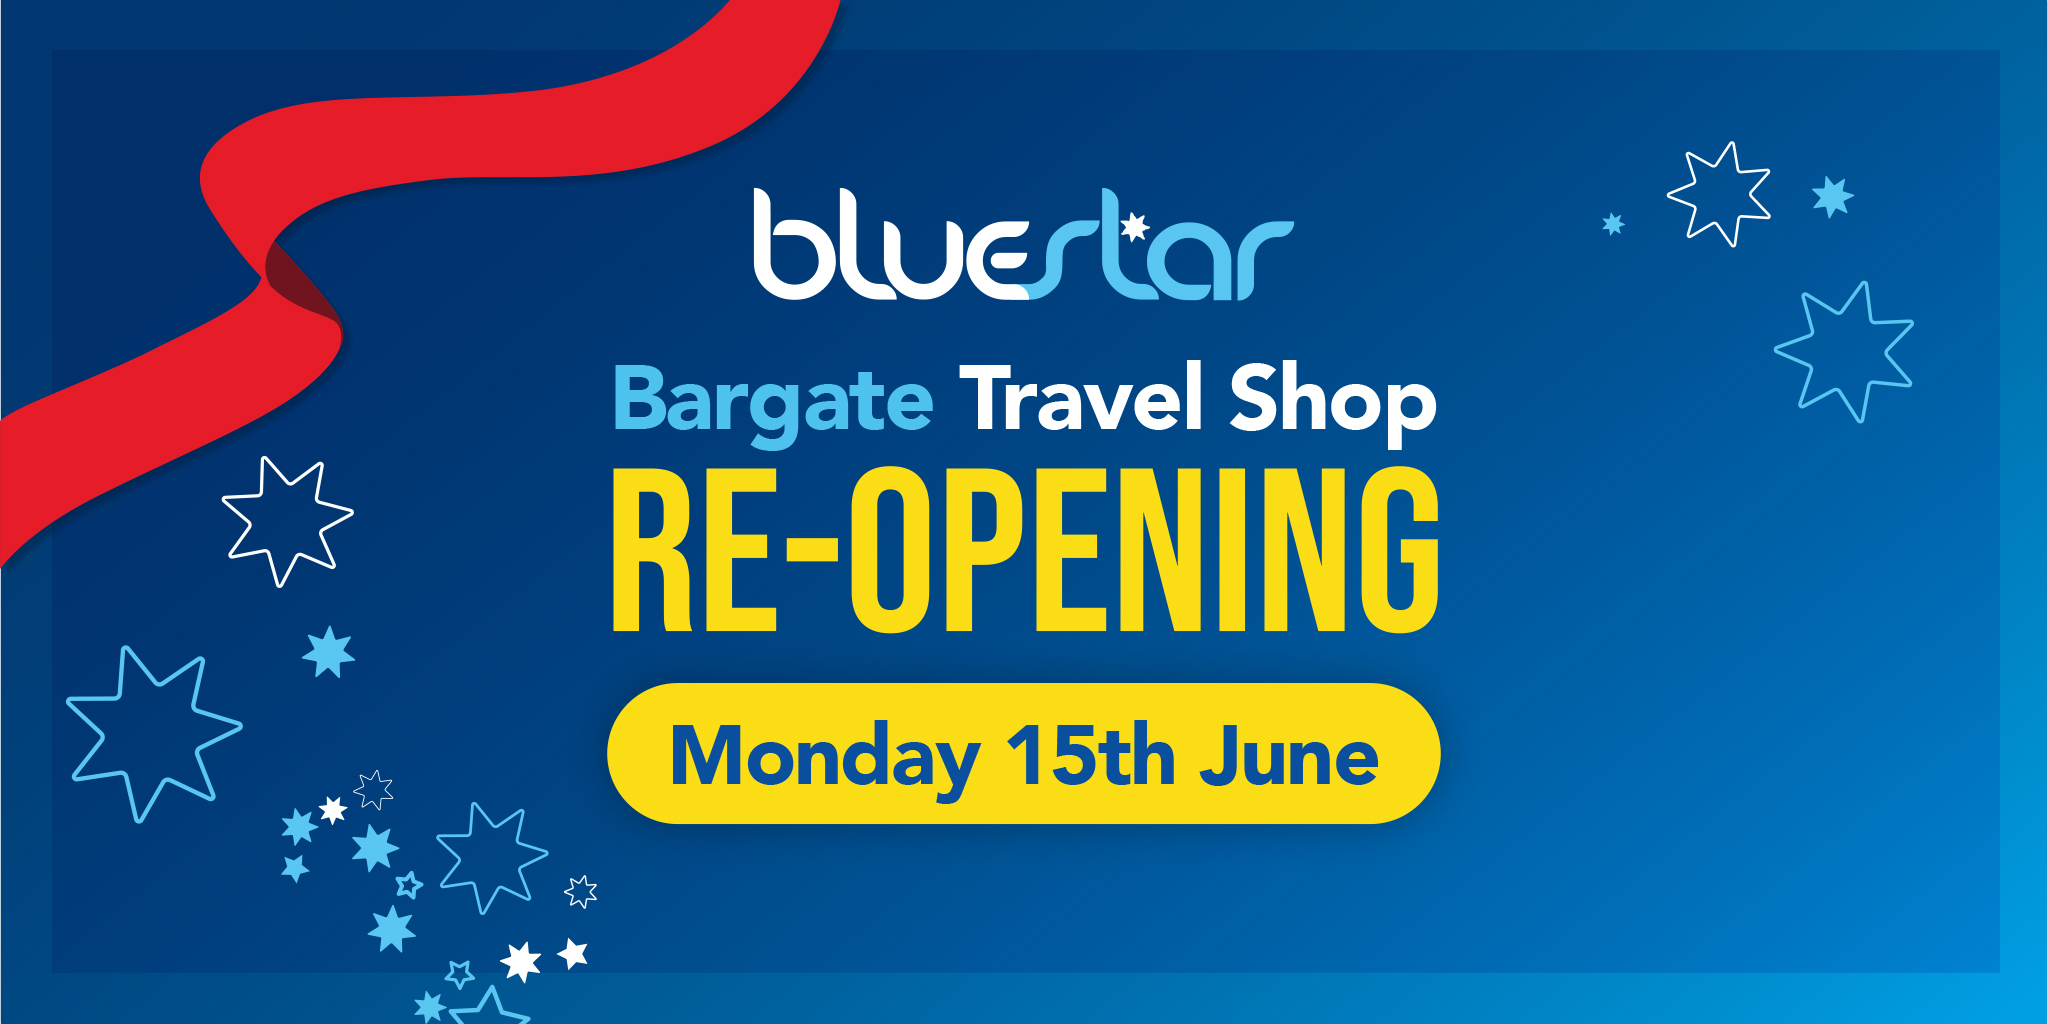 Image reading 'Bluestar Bargate Travel Shop Re-opening Monday 15th June'